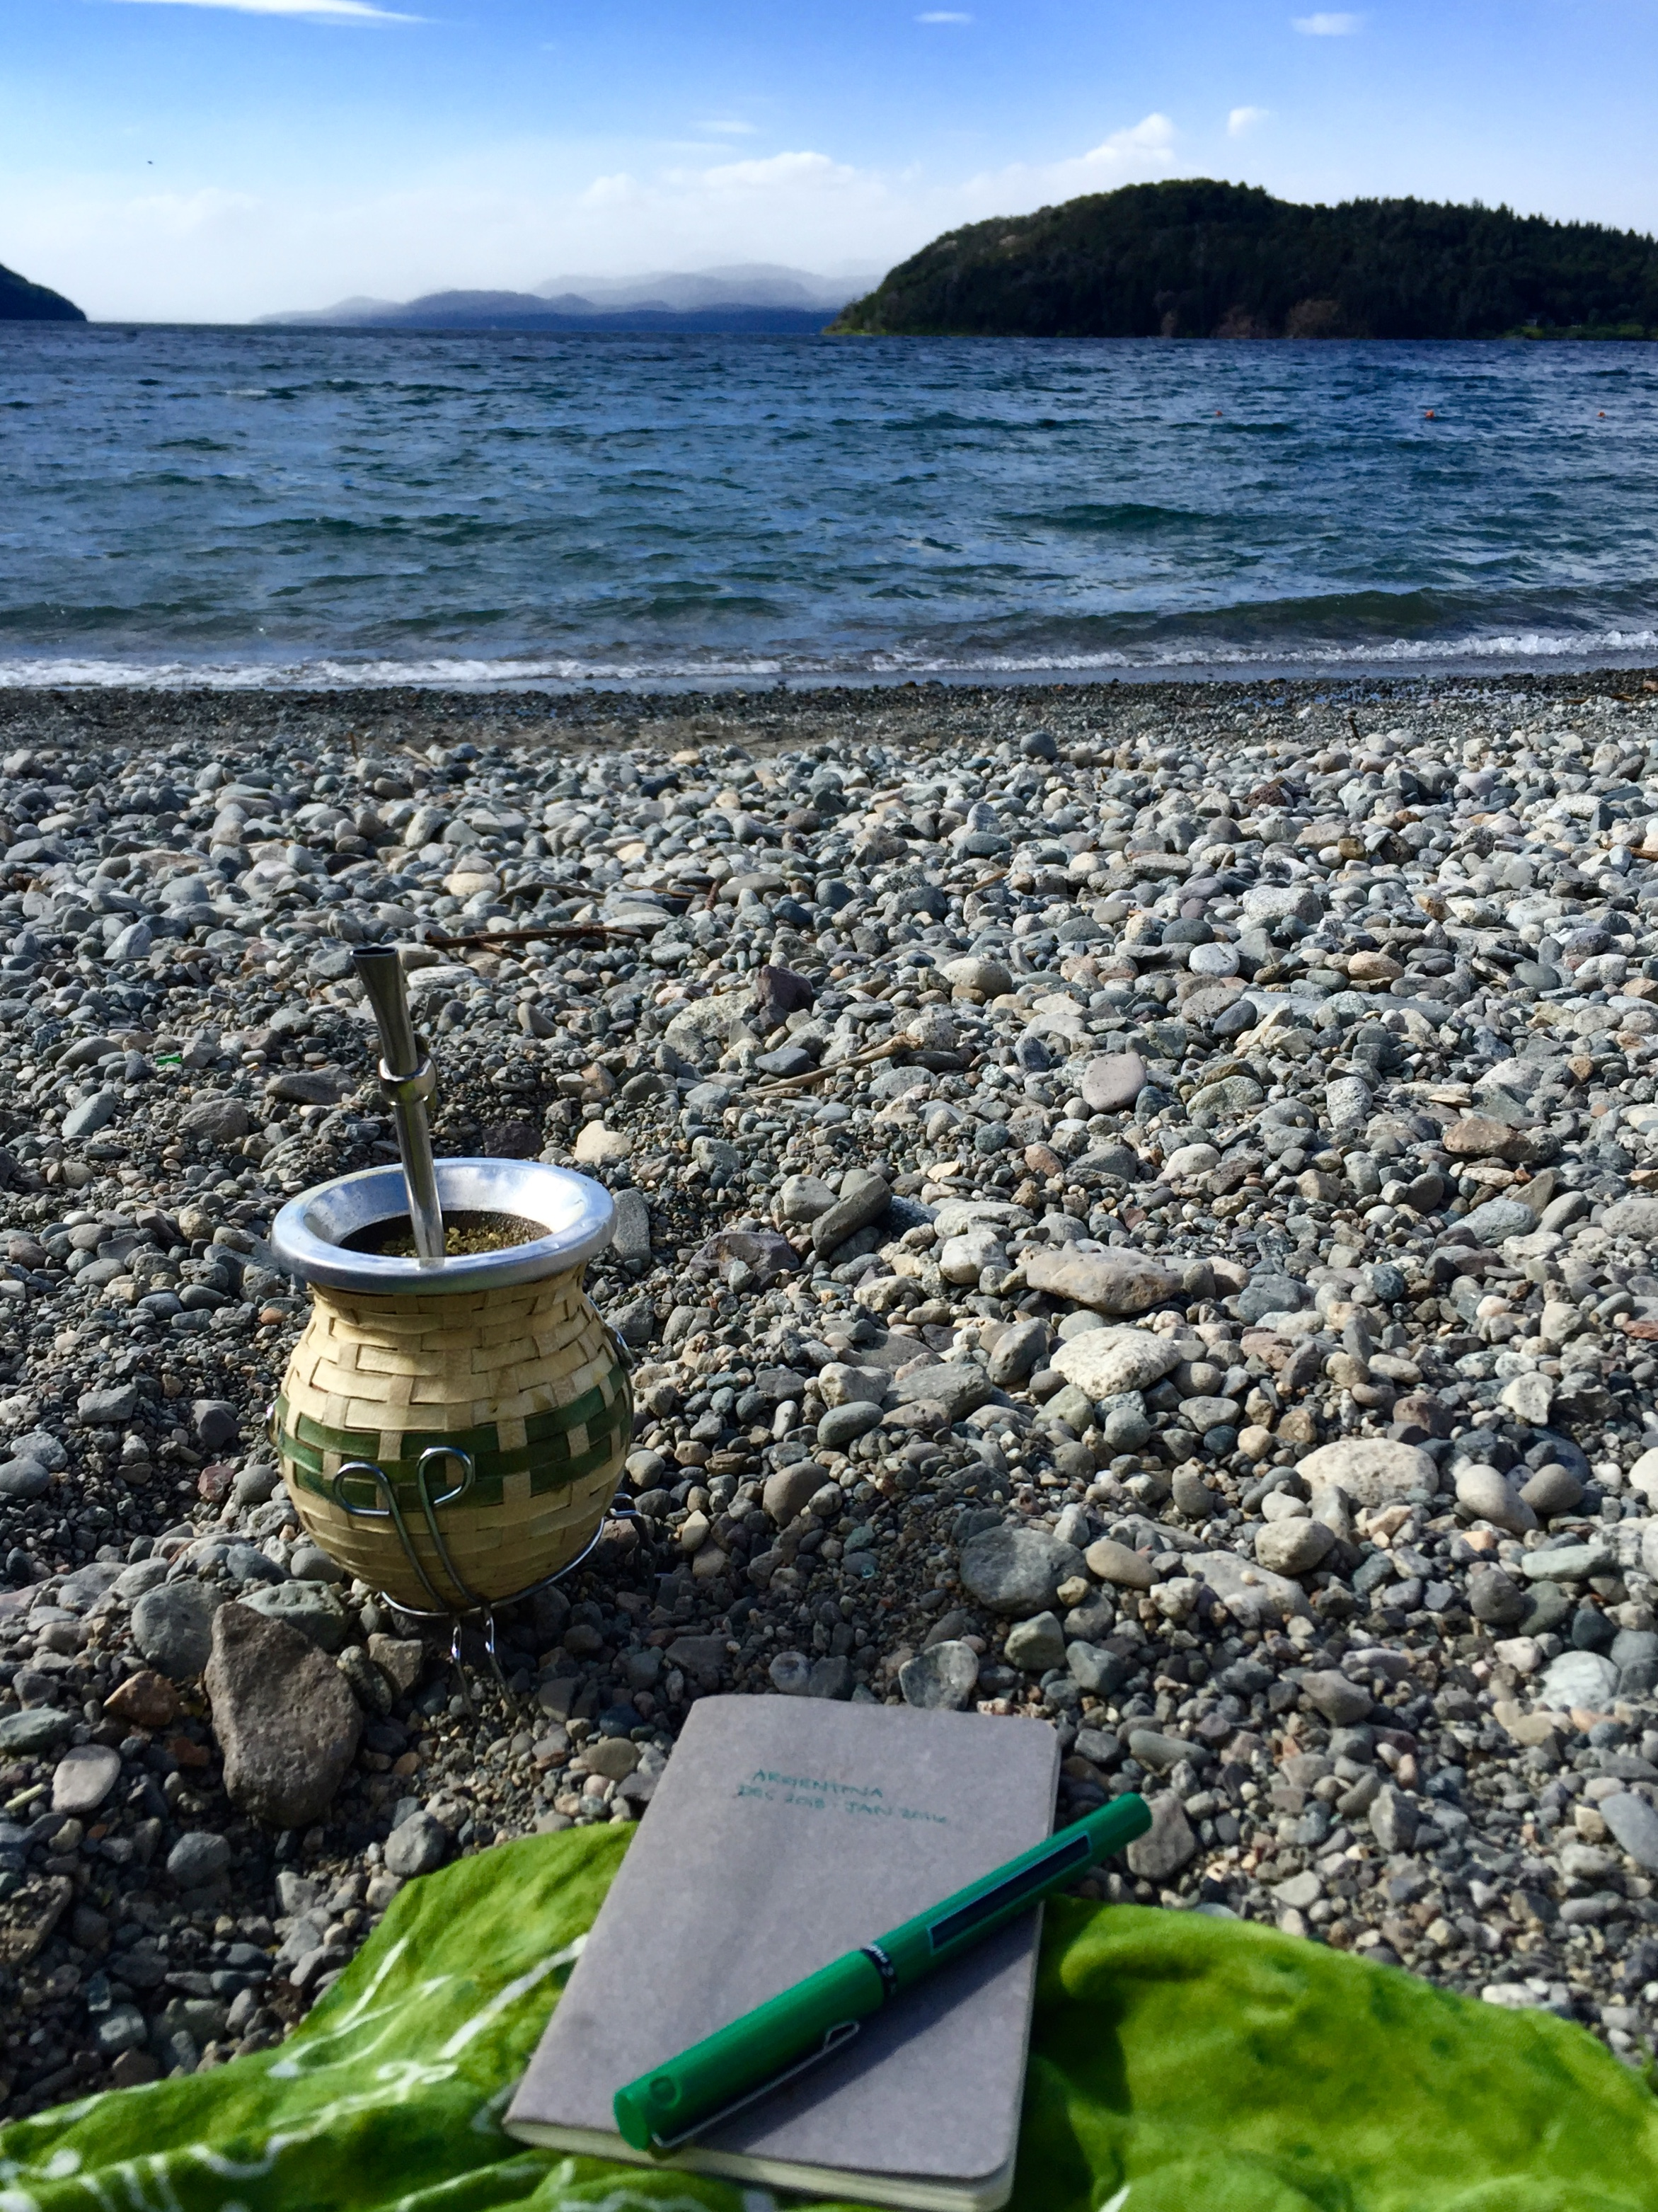 Sipping mate while making notes for next year's retreat.